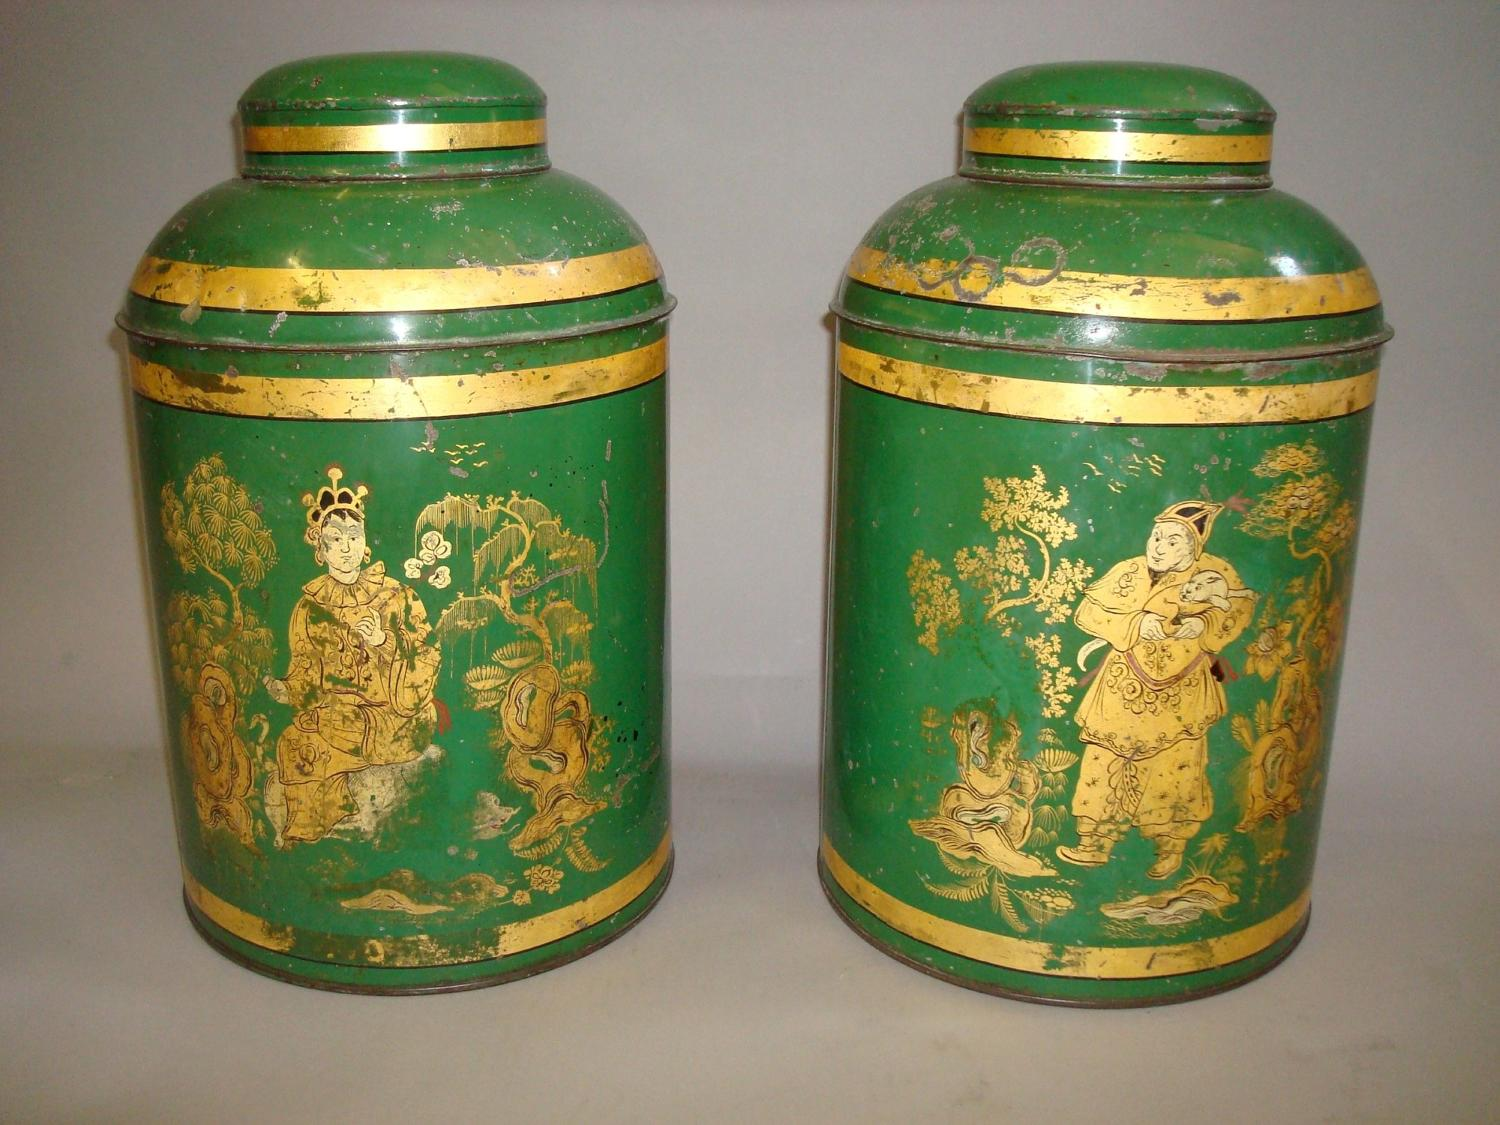 C19th japanned tole tea canisters